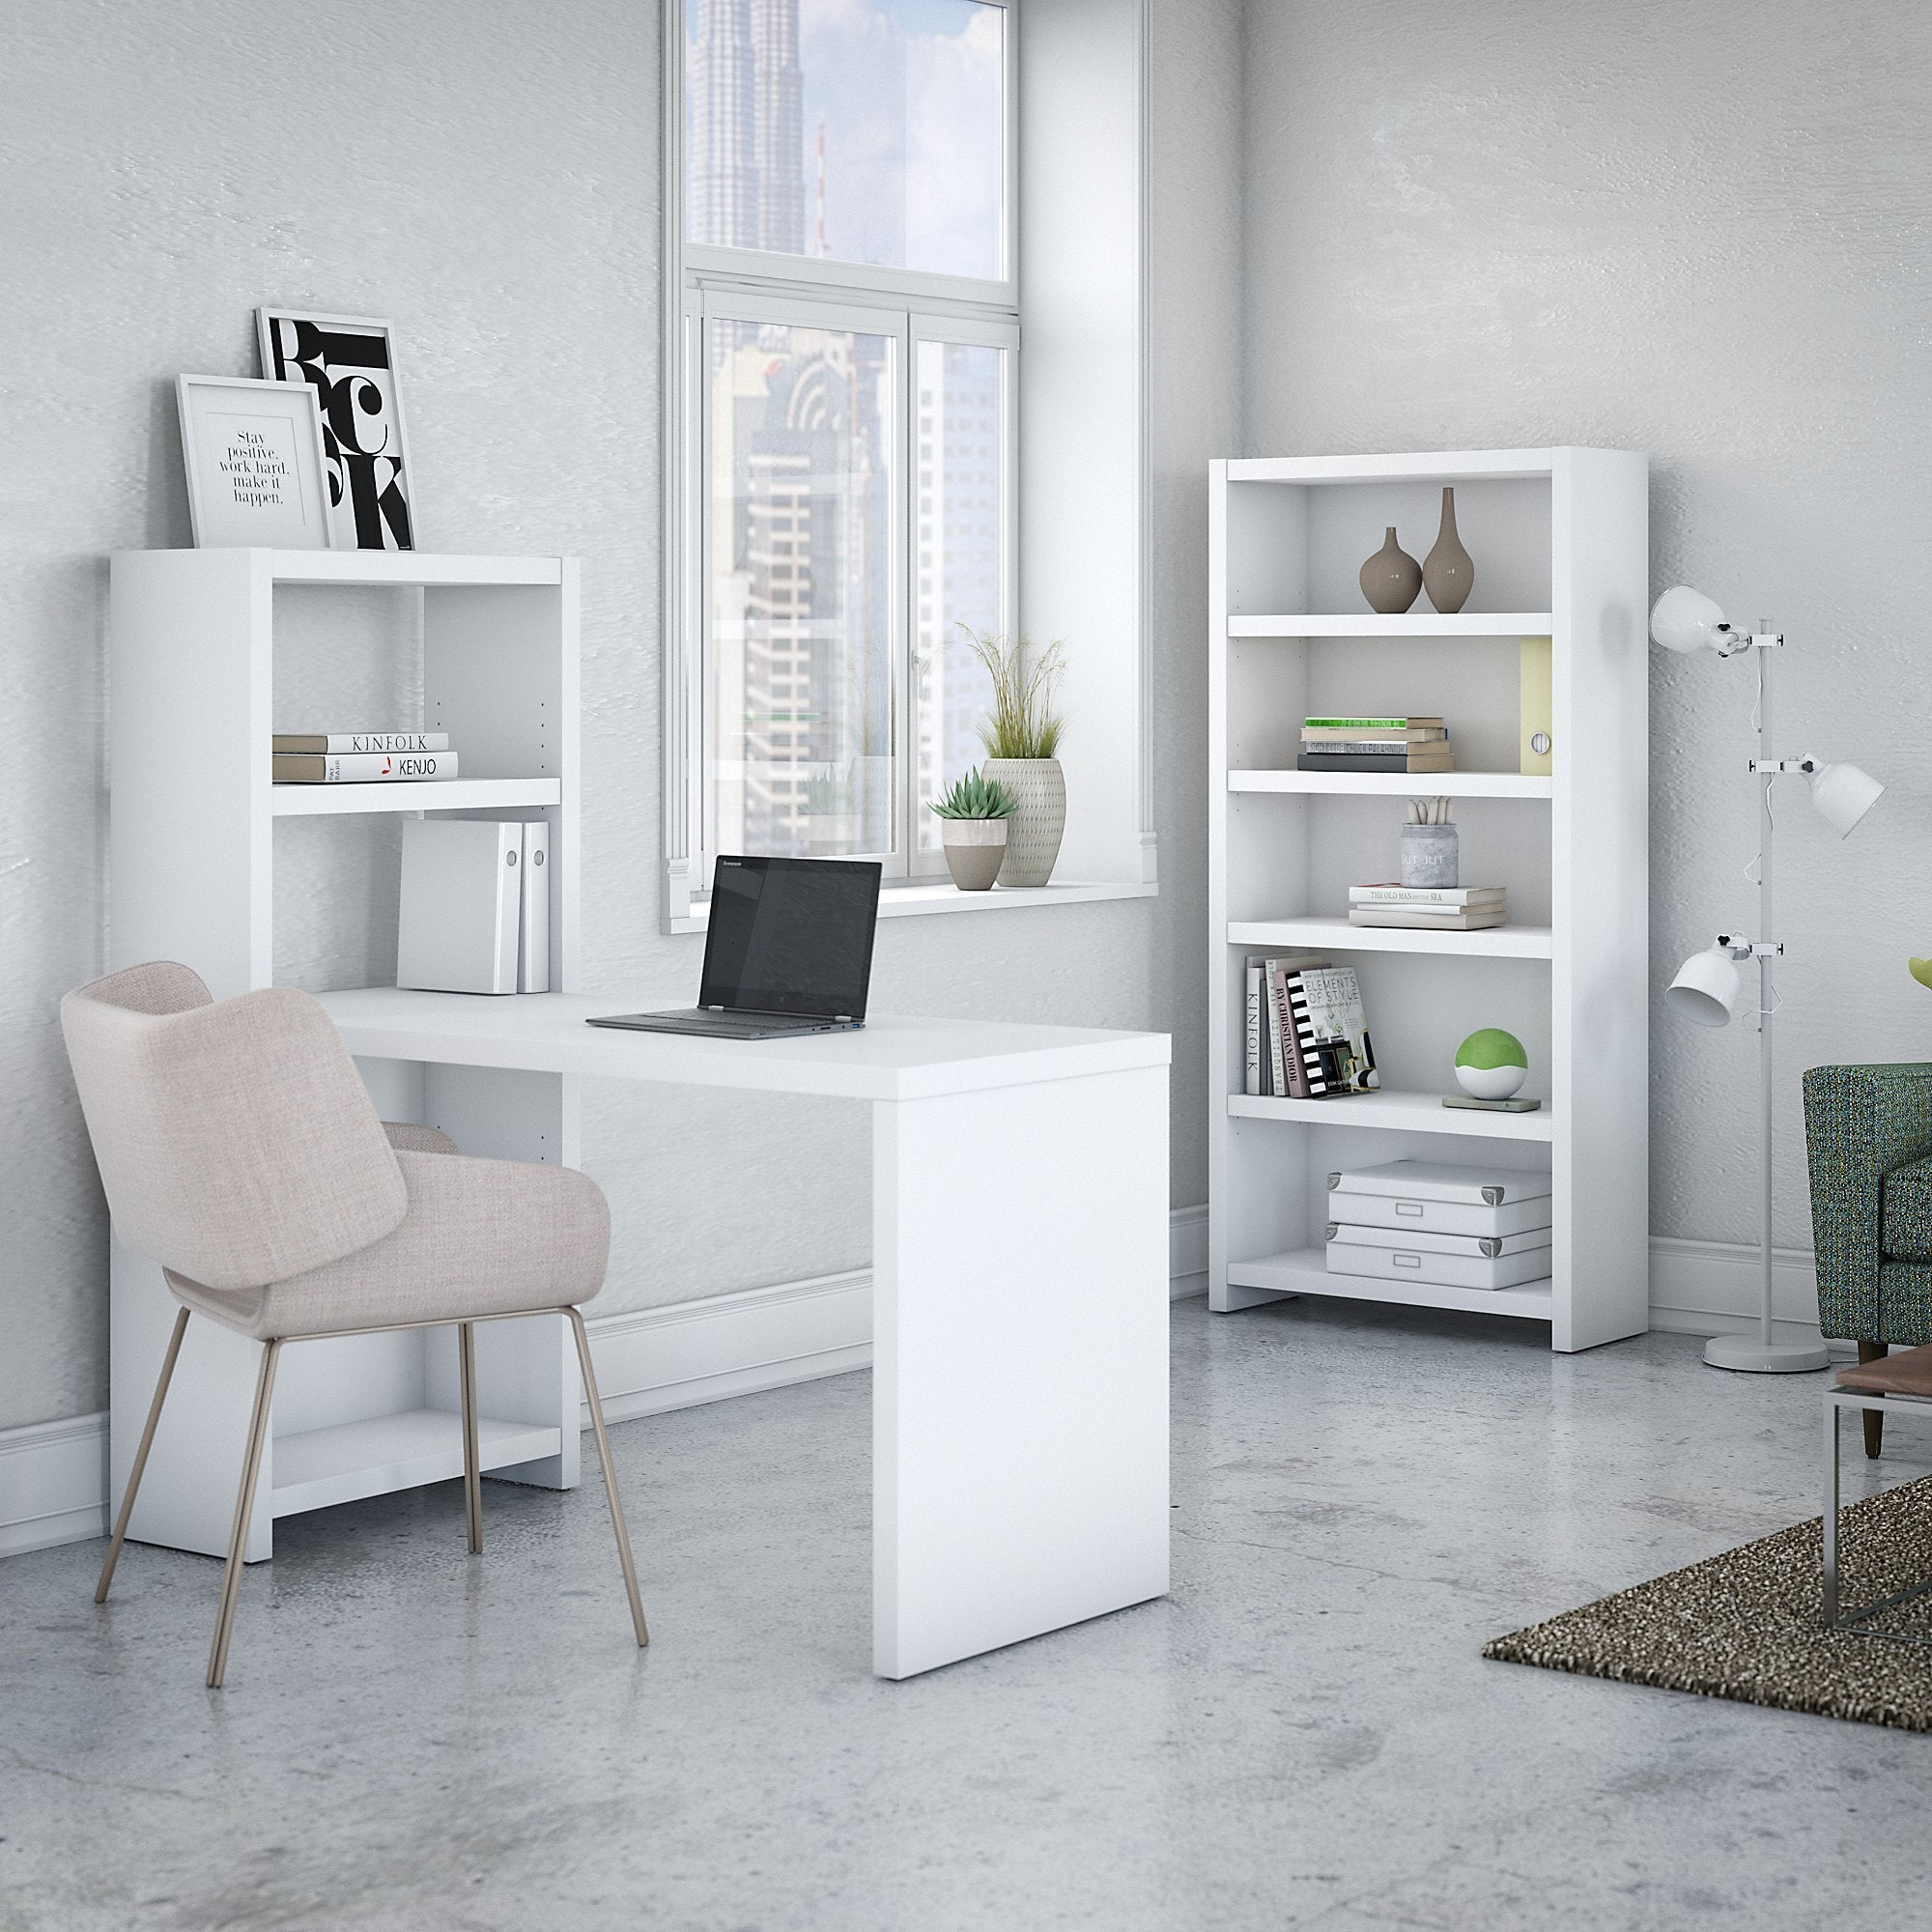 Shop Office by kathy ireland Echo Bookcase Desk with Storage - Free ...